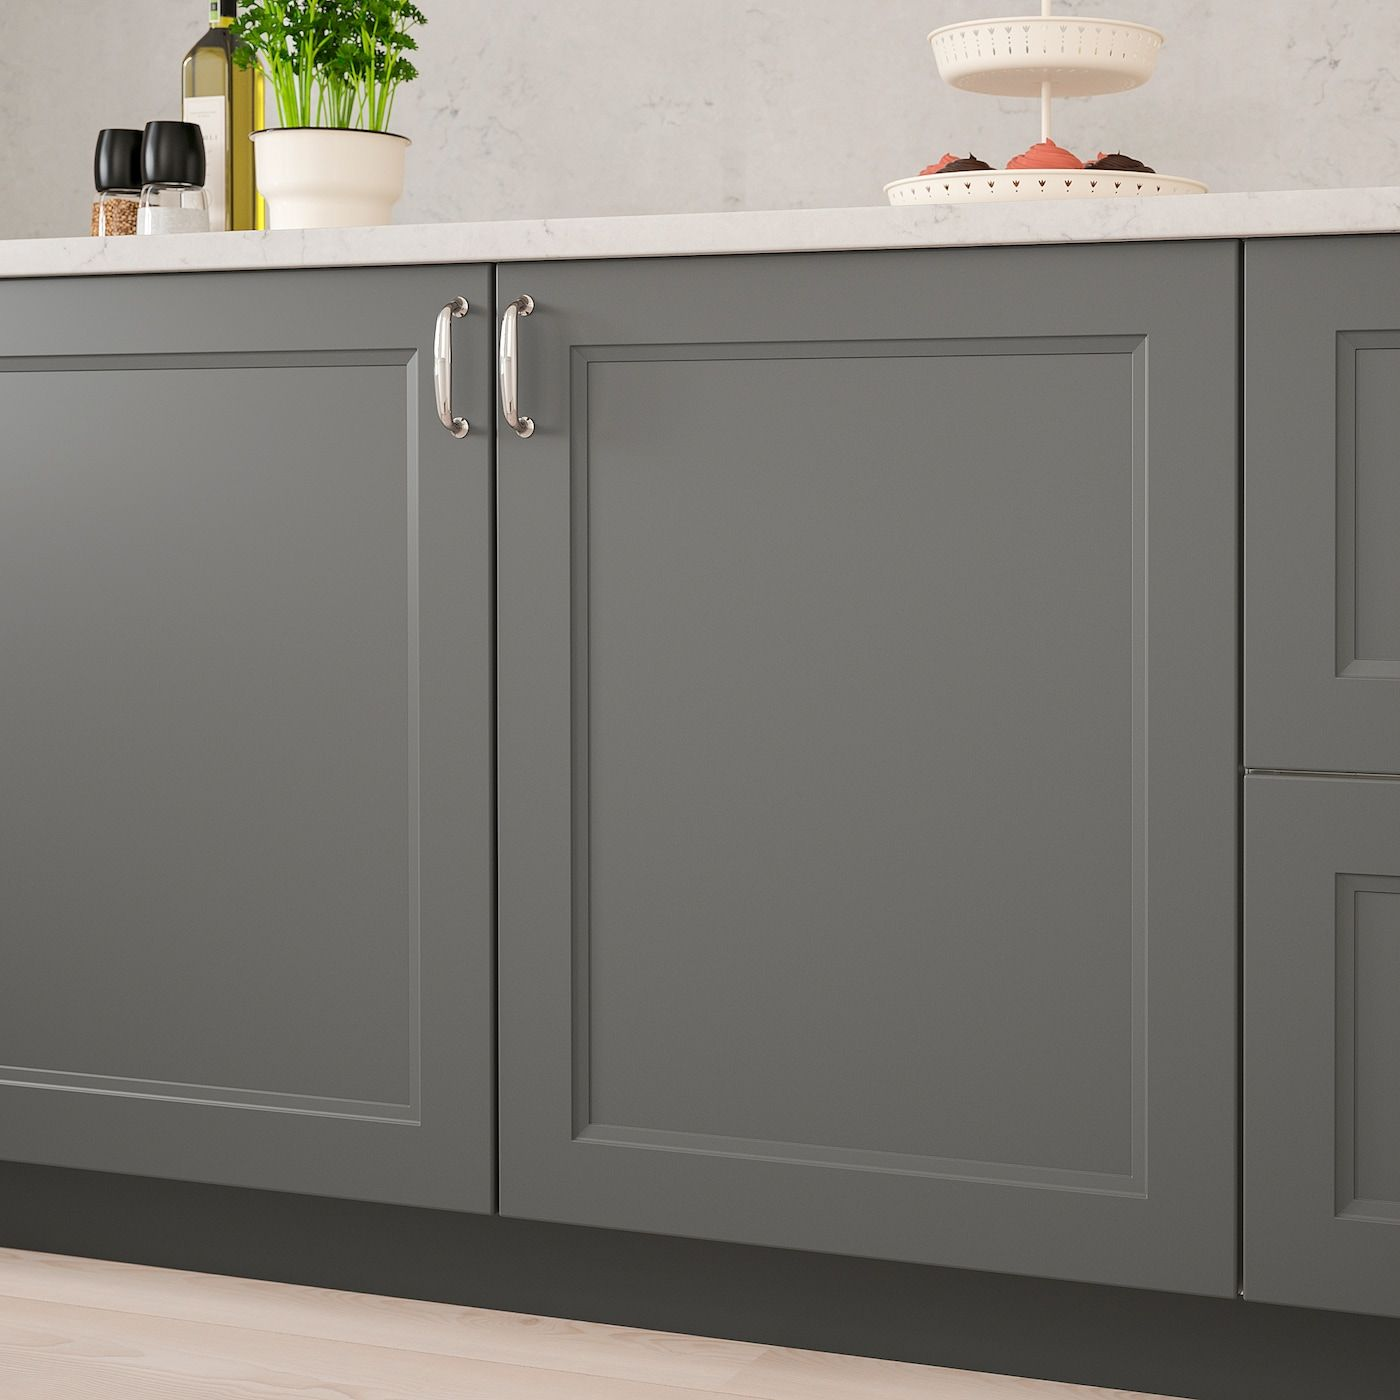 "AXSTAD Door, dark gray, 15x15"" IKEA in 2020 Dark grey"